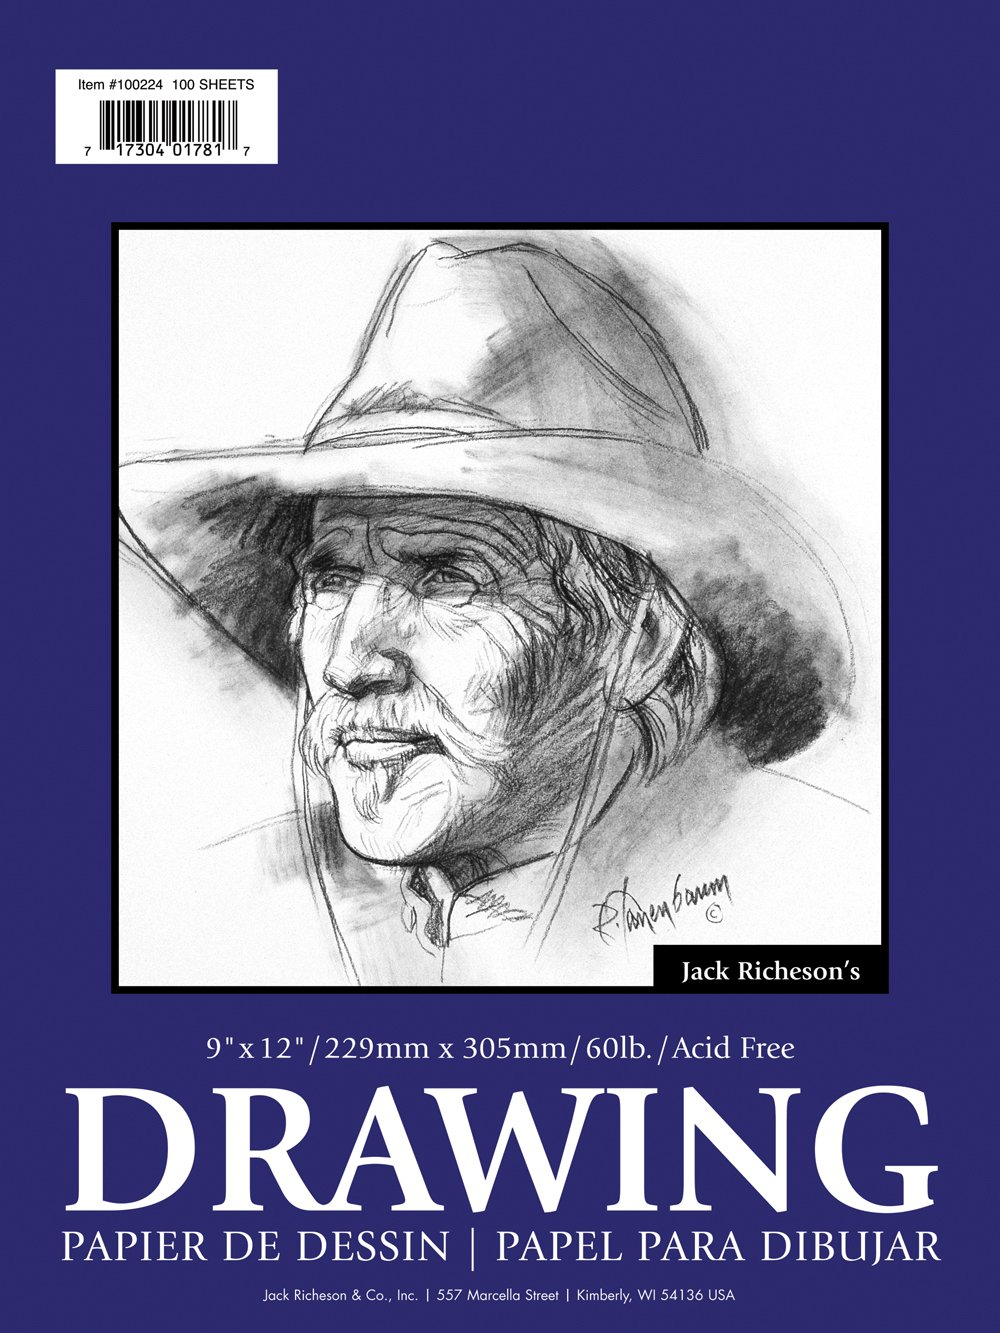 Jack Richeson 14-Inch-by-17-Inch Drawing Paper Pad, 100-Sheet by Jack Richeson